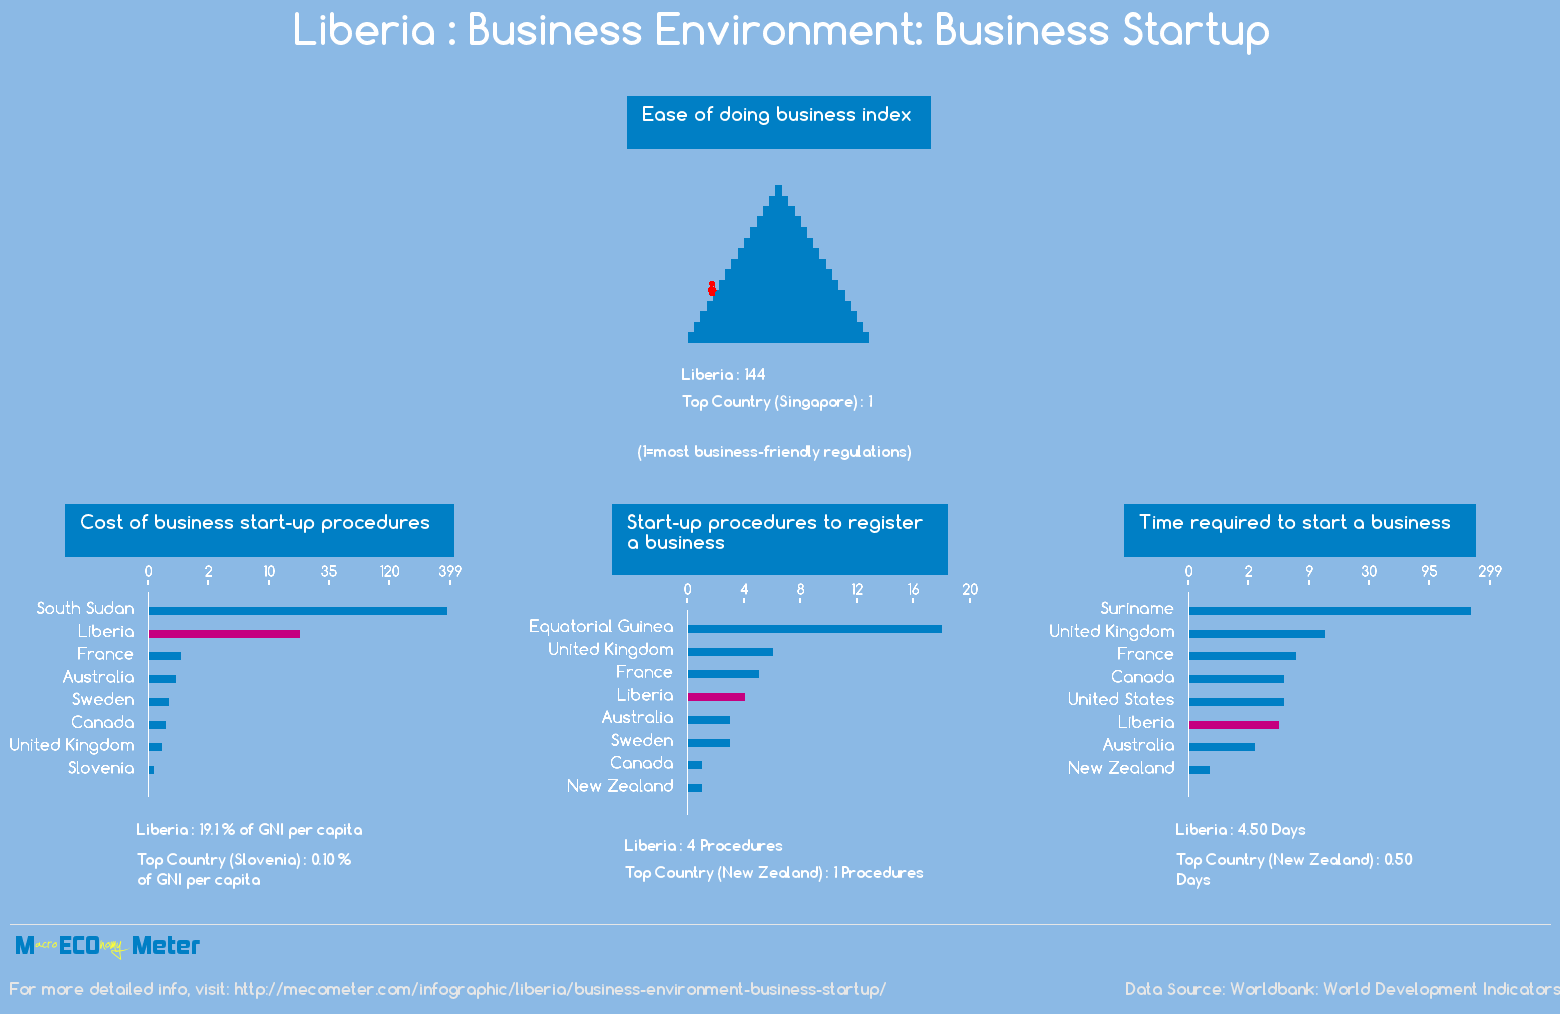 Liberia : Business Environment: Business Startup